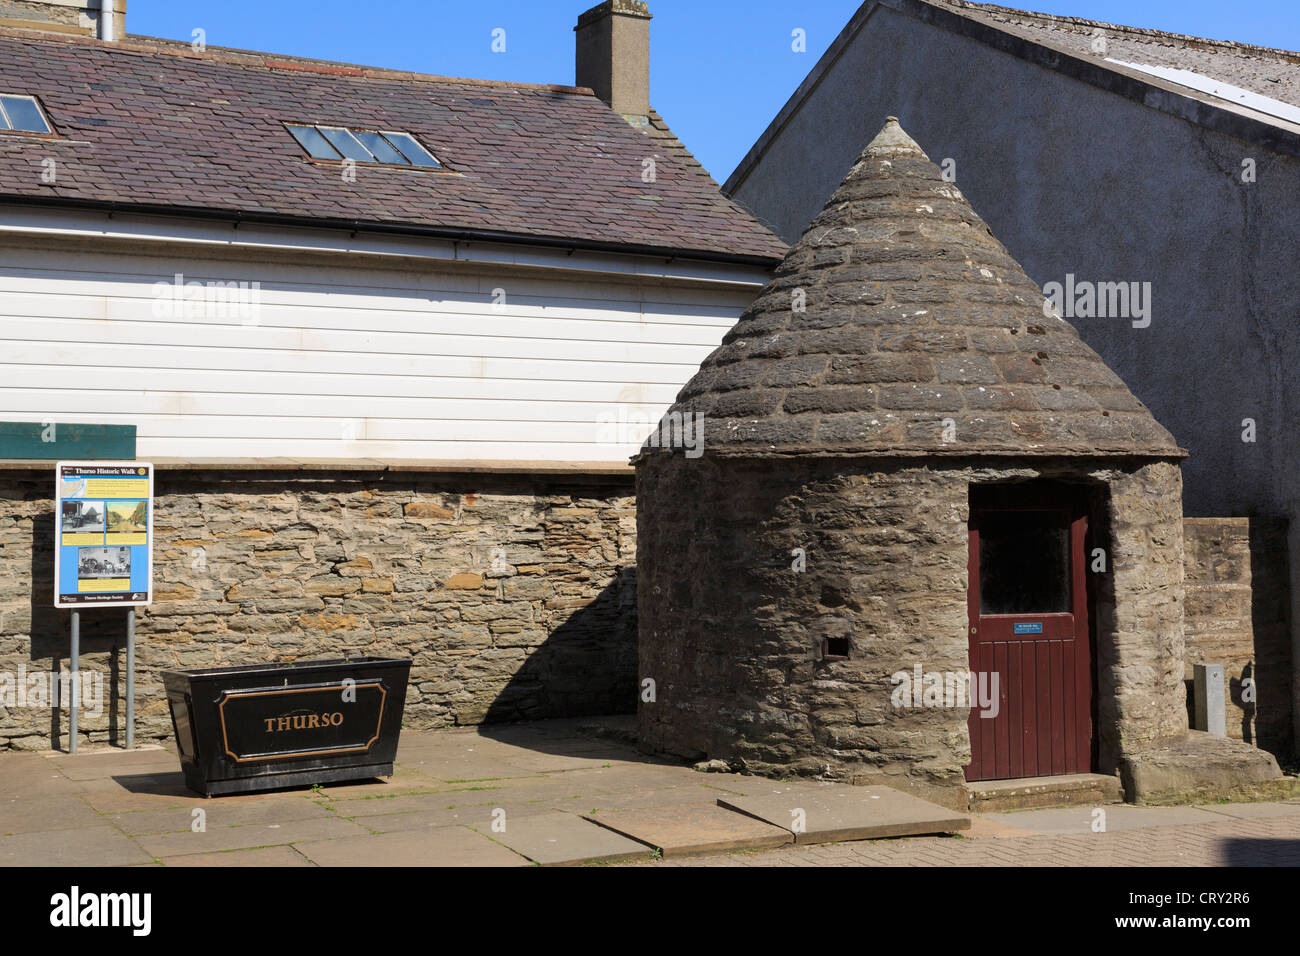 Meadow Well house with conical stone roof built 1818 is on historic town trail in Thurso, Caithness, Scotland, UK, - Stock Image